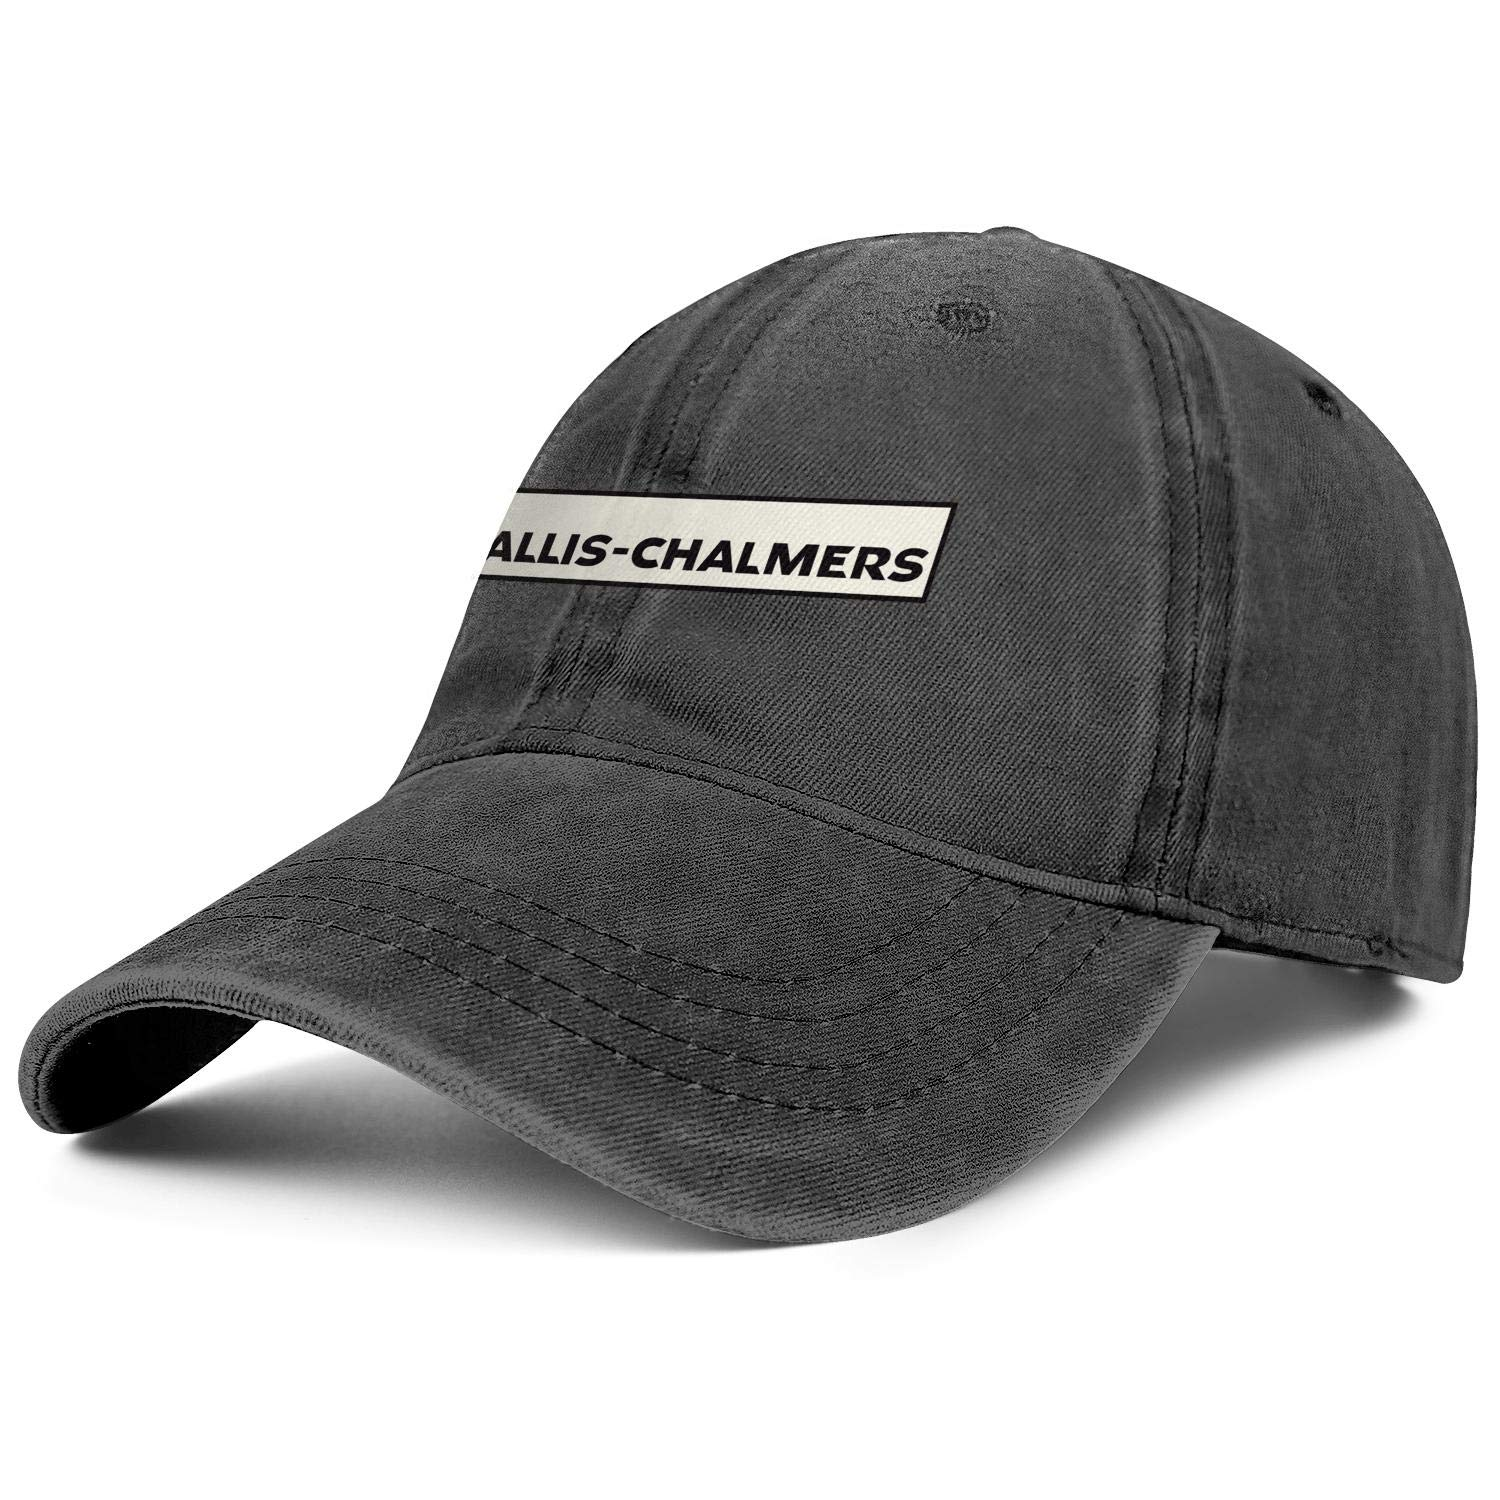 Allis Chalmers Unisex Classic All Cotton Washed Trucker Low Profile Snapback Hat